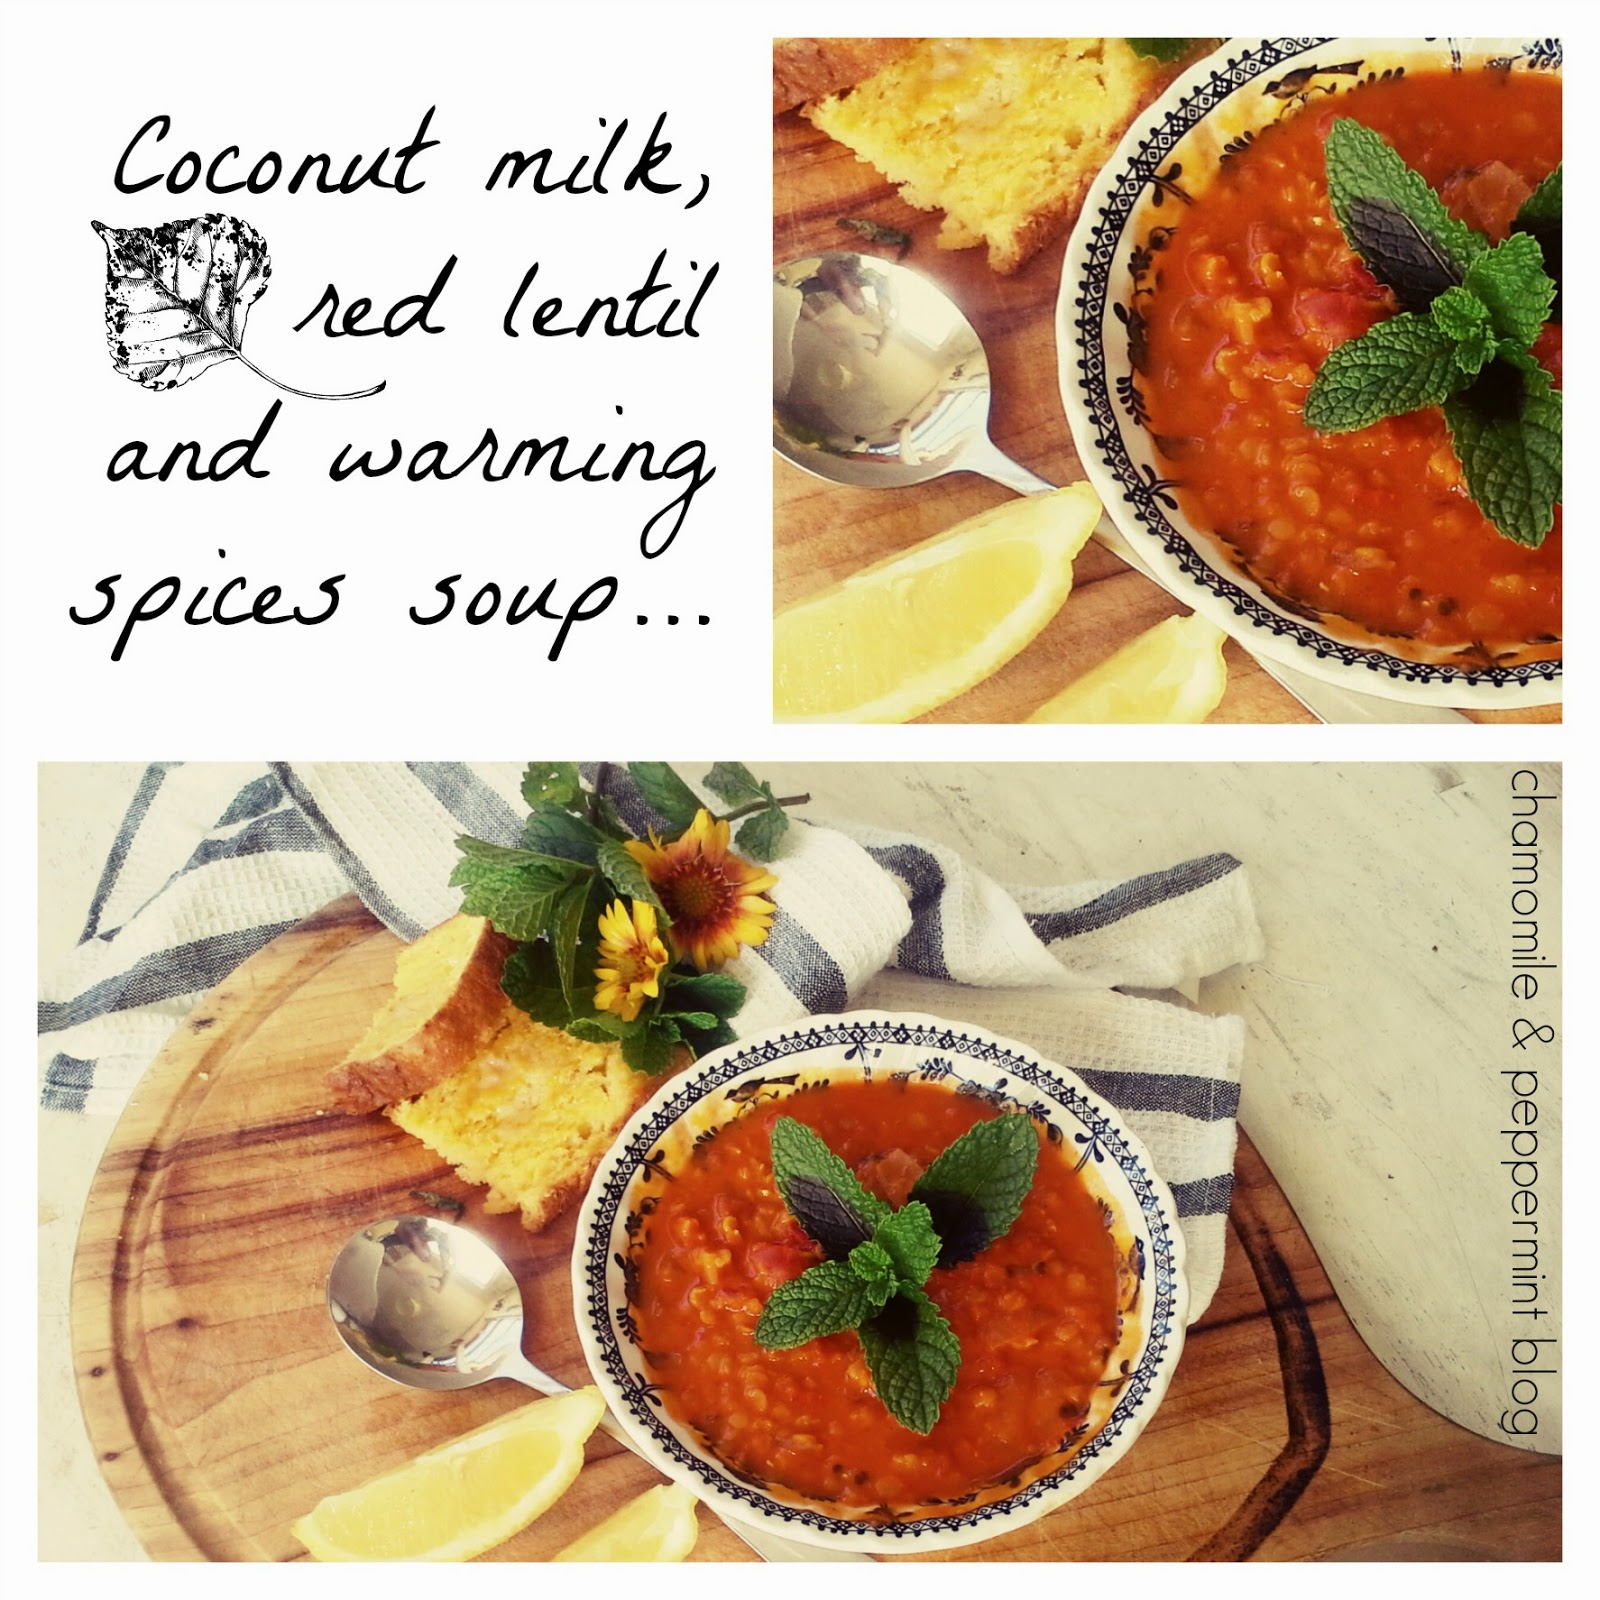 Chamomile and Peppermint Blog - Healthy coconut milk, red lentil and warming spices soup recipe